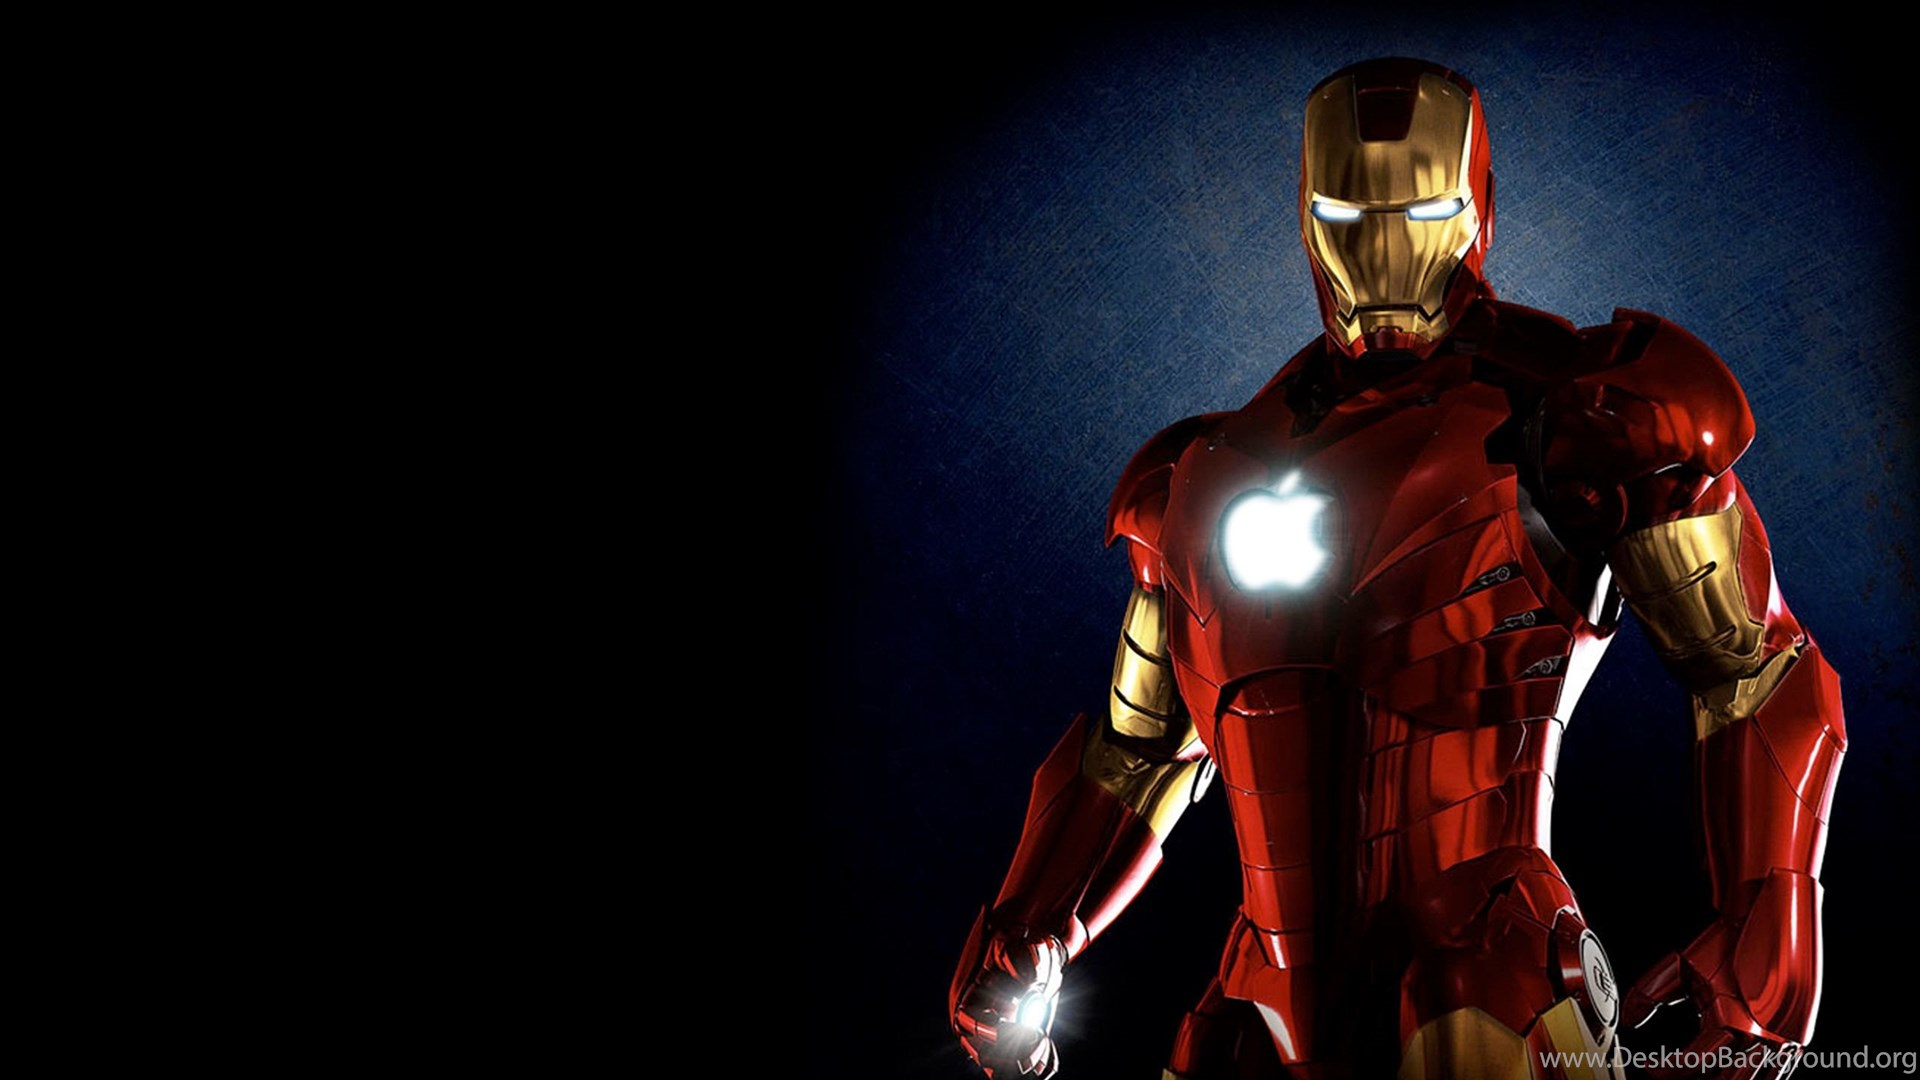 35 Iron Man Hd Wallpapers For Desktop: Iron Man Wallpapers HD Pictures Desktop Background